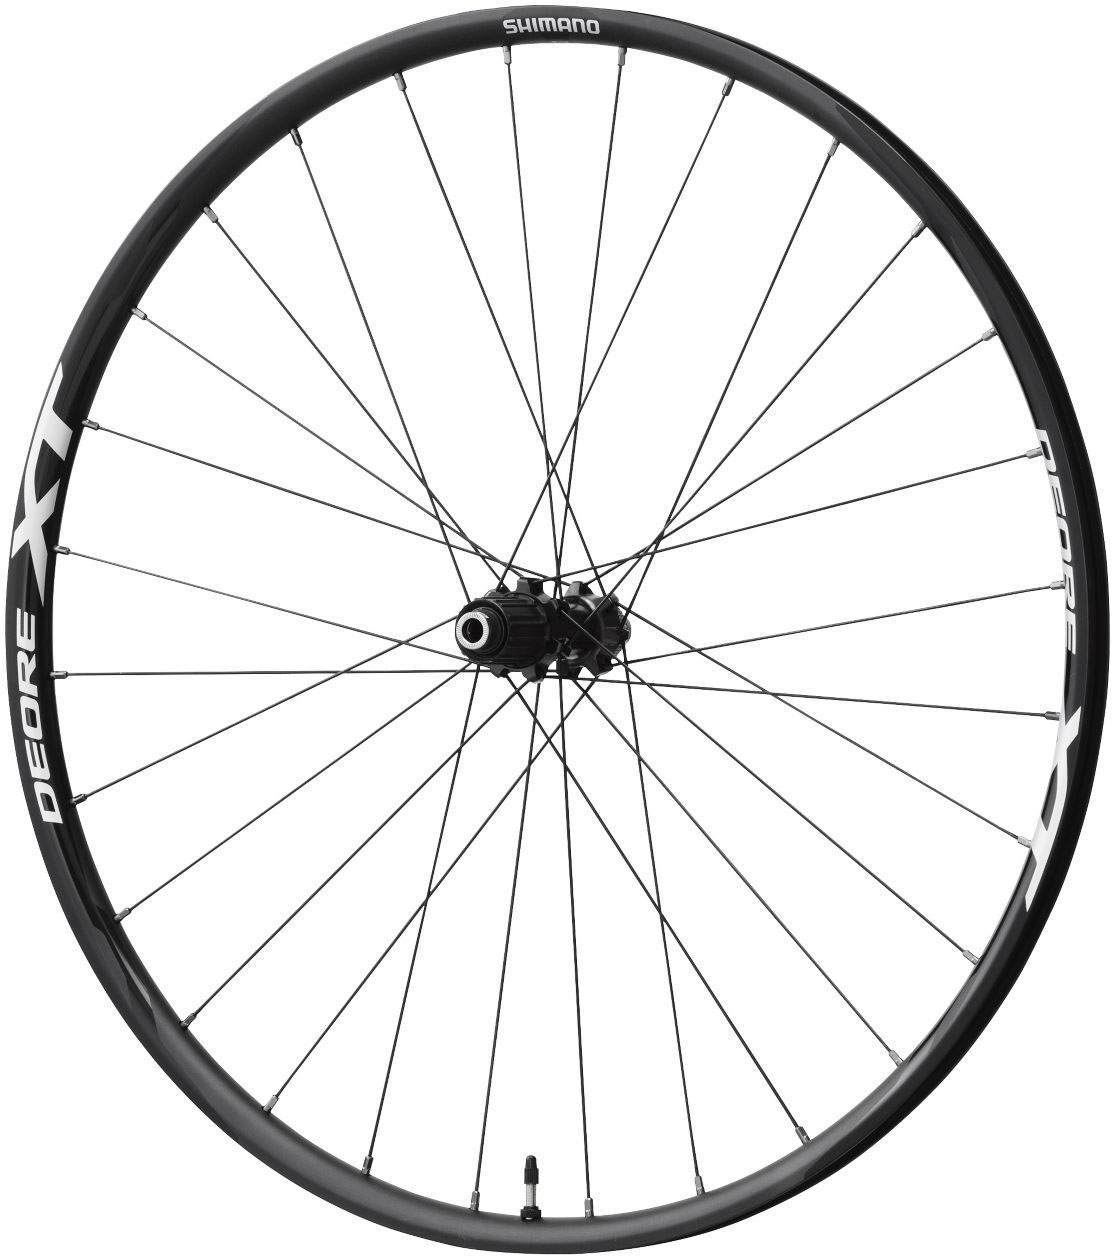 Shimano XT M8020 Trail Rear Wheel | Rear wheel